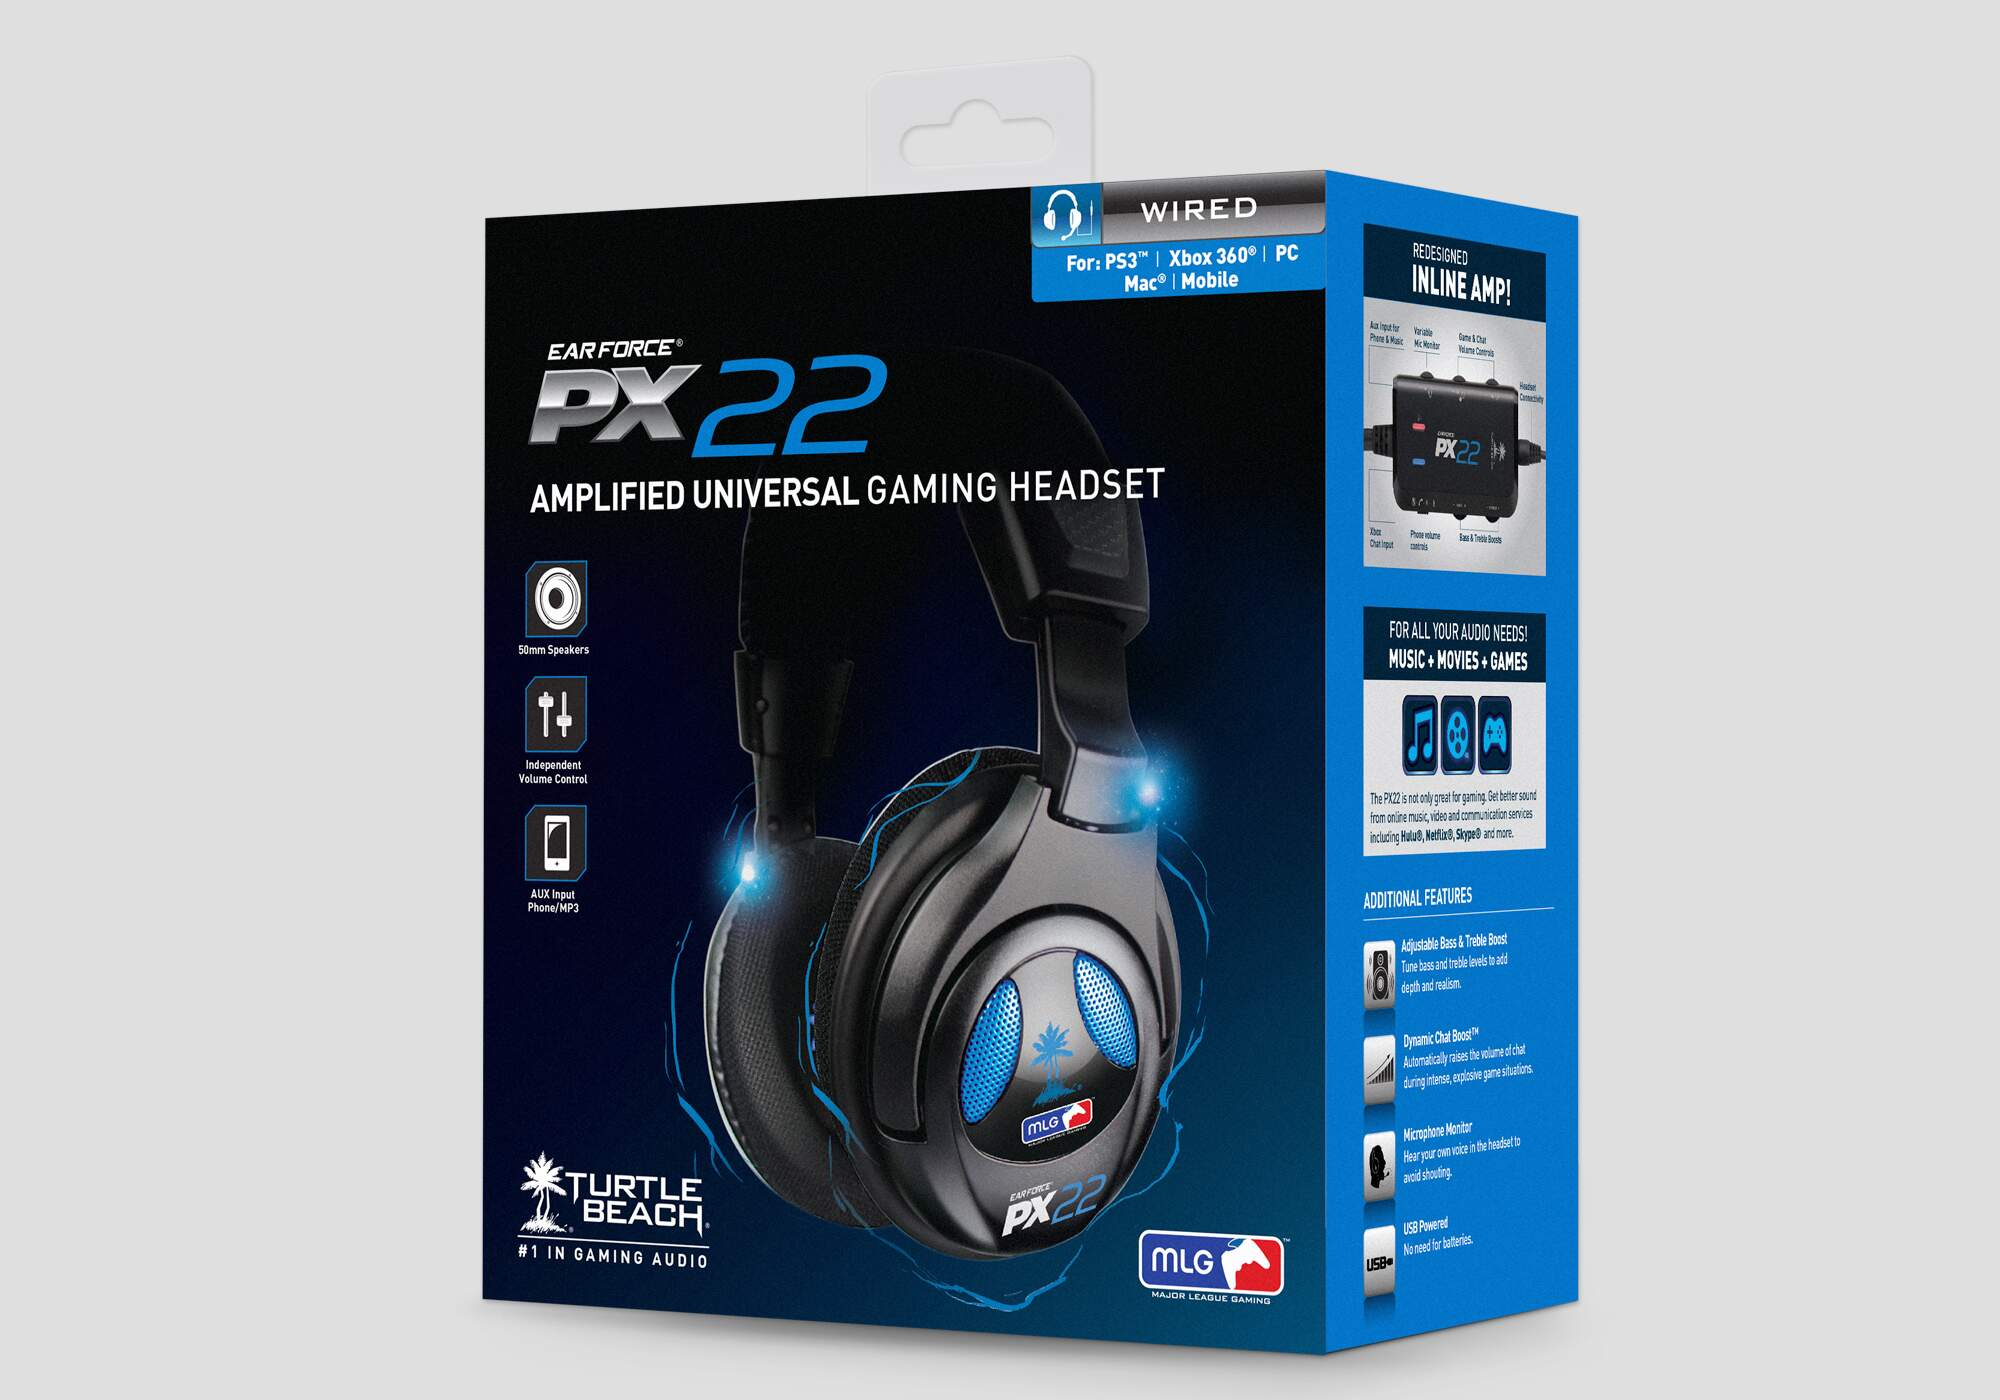 Headset Ear Force Px22 Turtle Beach - Ps4 Ps3 Xbox 360 PC MAC